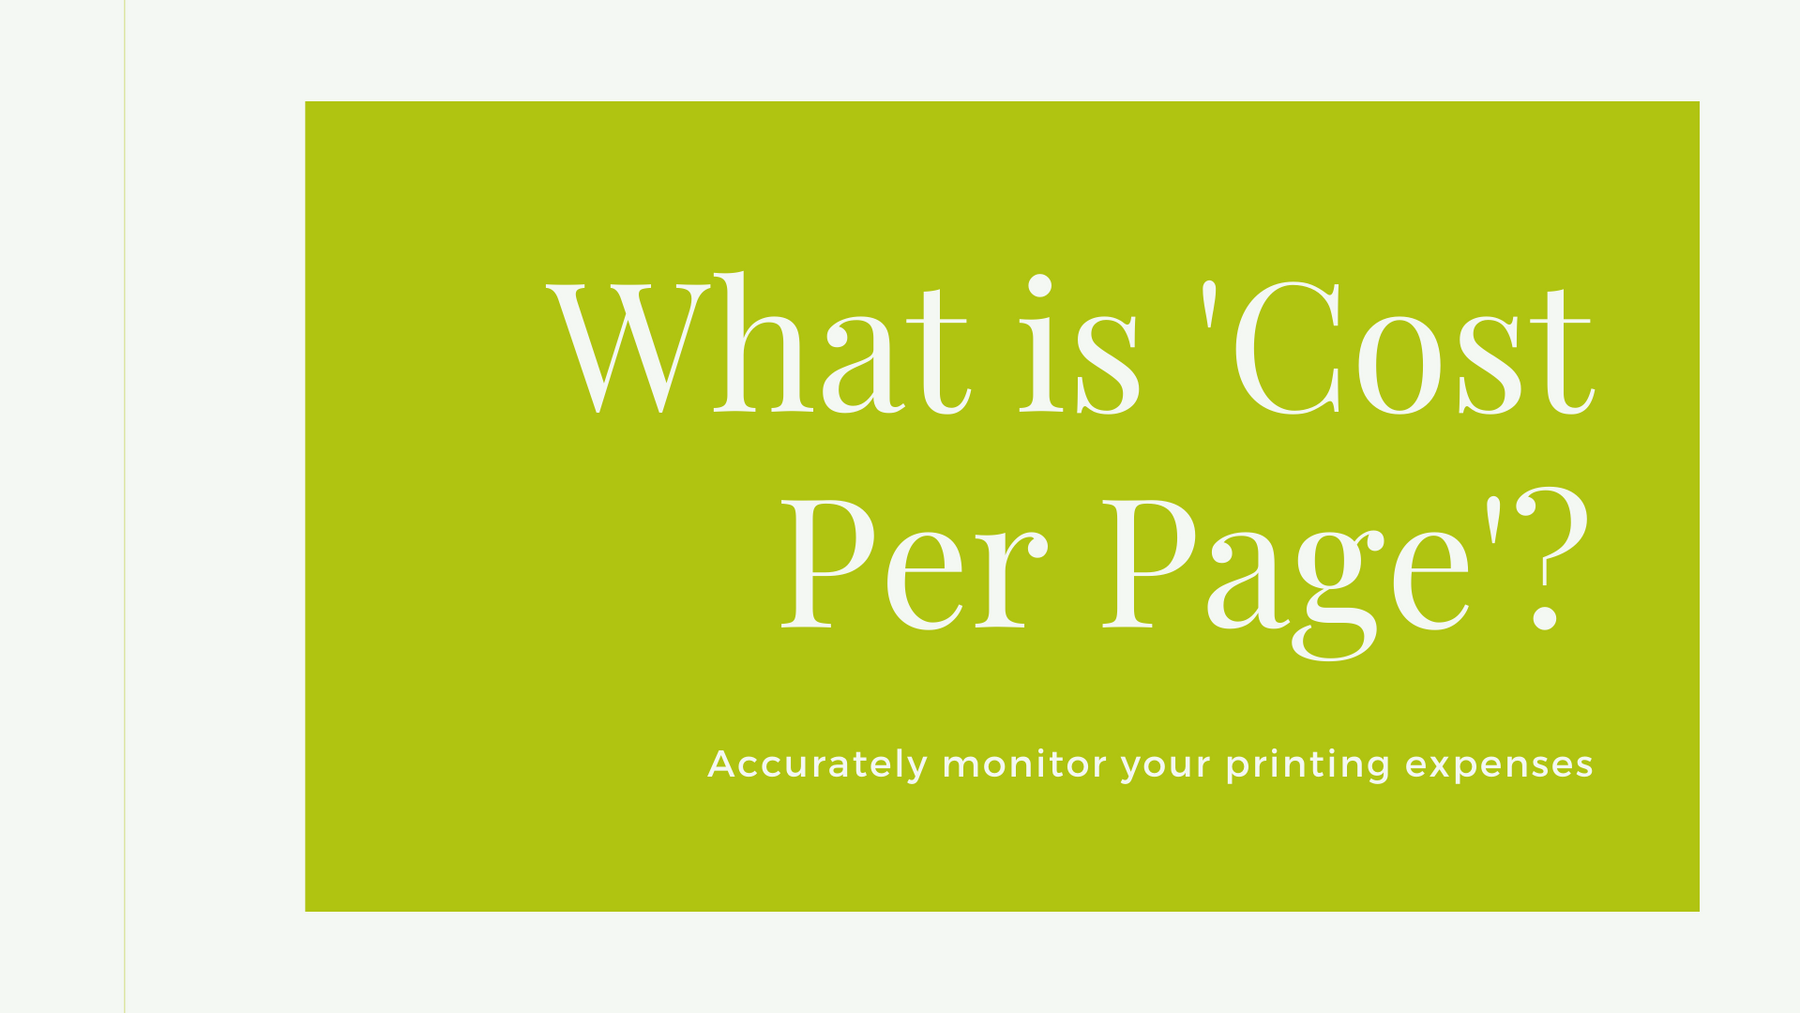 Image that states 'What is cost per page? Accurately monitor your printing expenses'